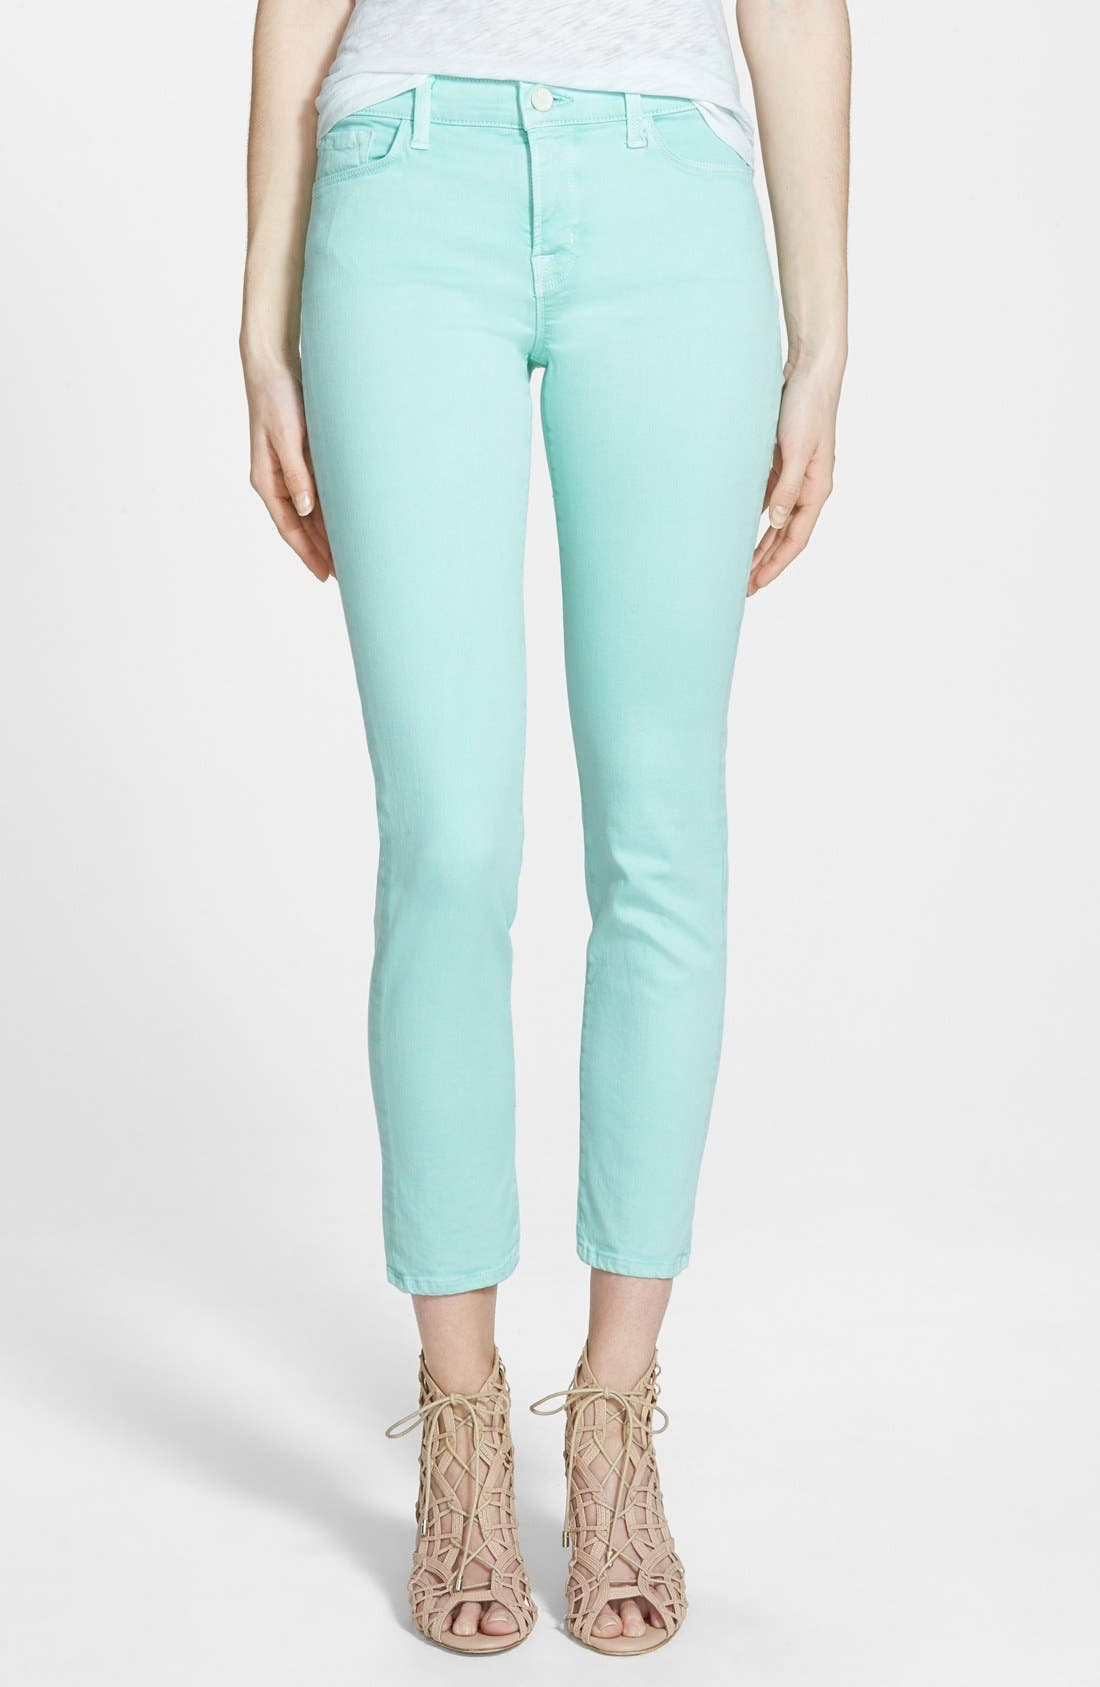 Main Image - J Brand 'Rail' Mid Rise Super Skinny Jeans (Sea Green)